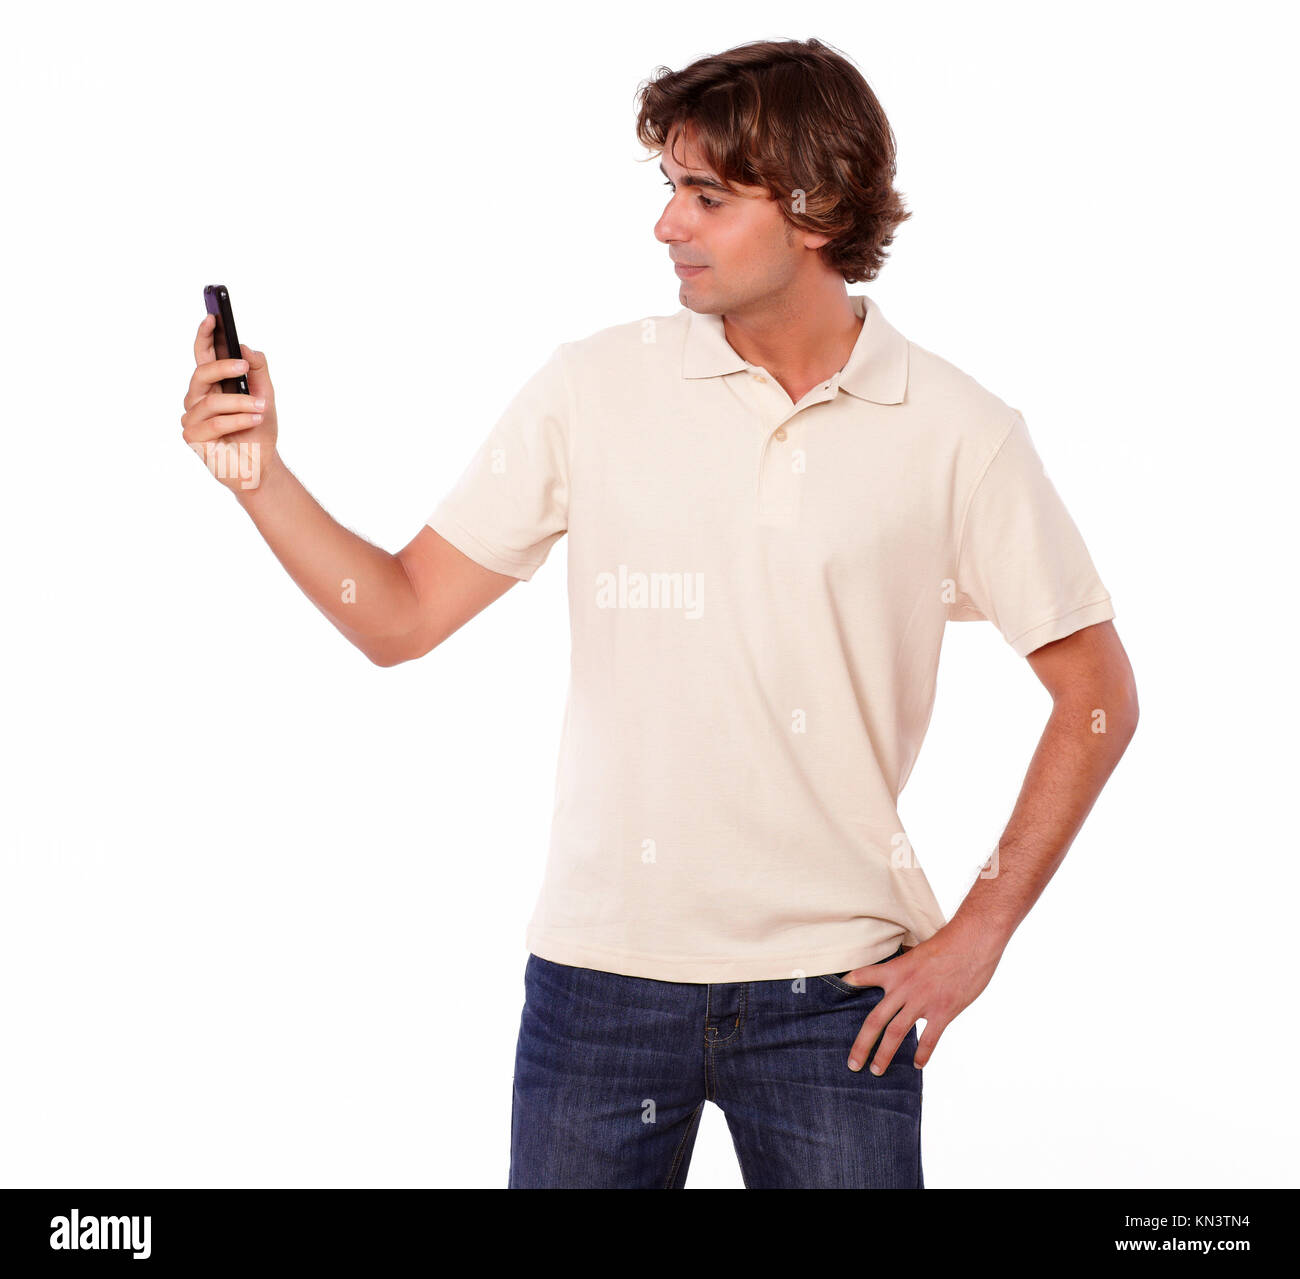 Portrait of a latin man in jeans reading on cellphone on white background. - Stock Image